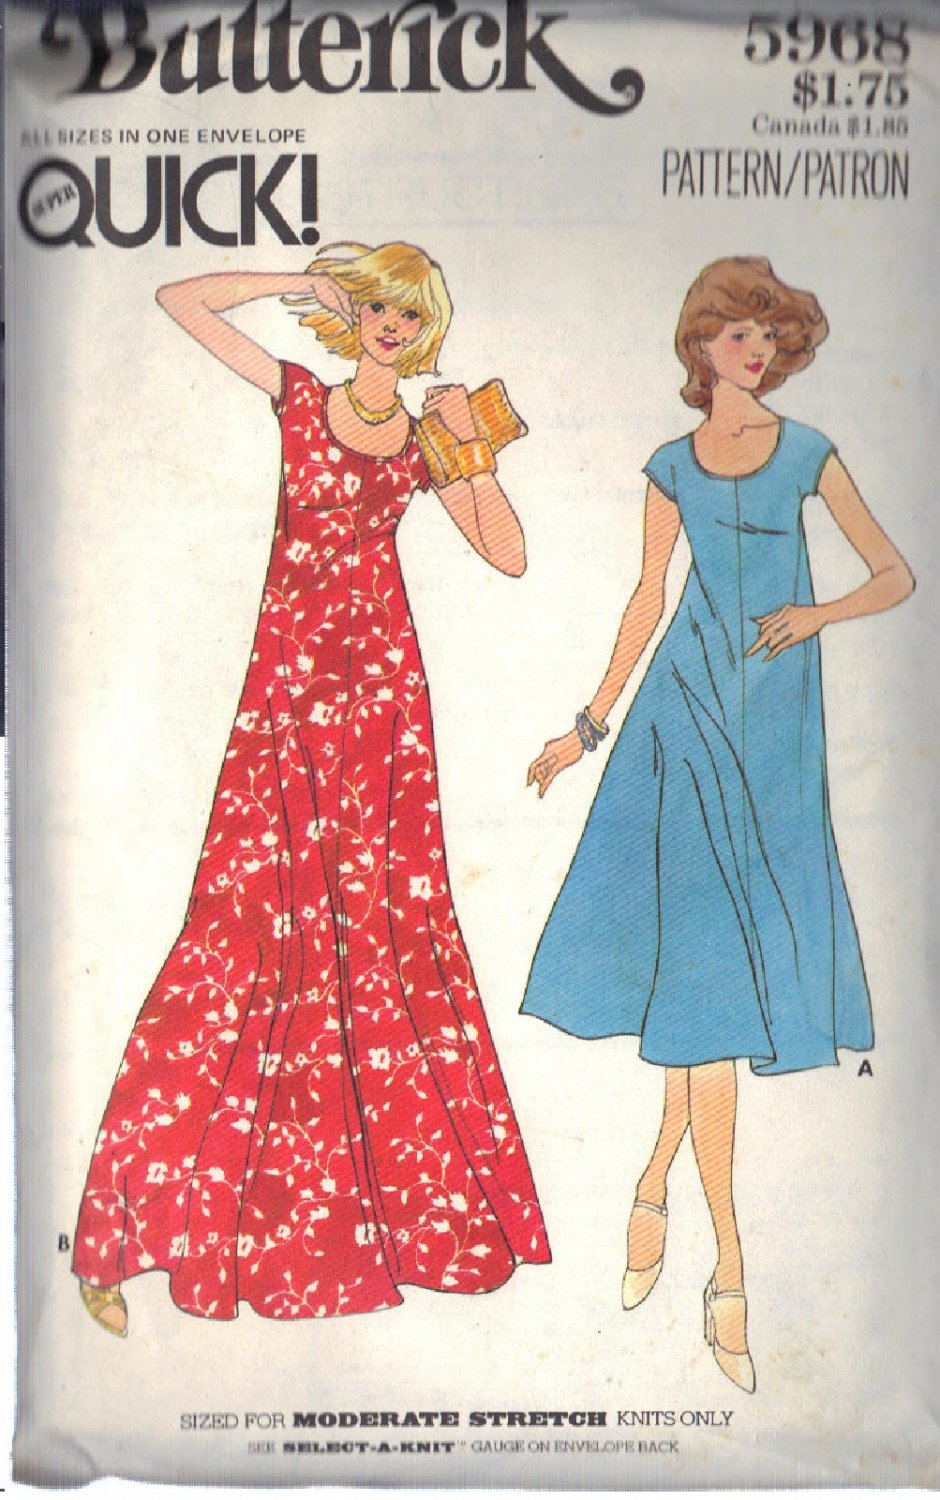 Butterick vintage pattern 5968 Misses� dress in 2 lengths sizes S/M/L